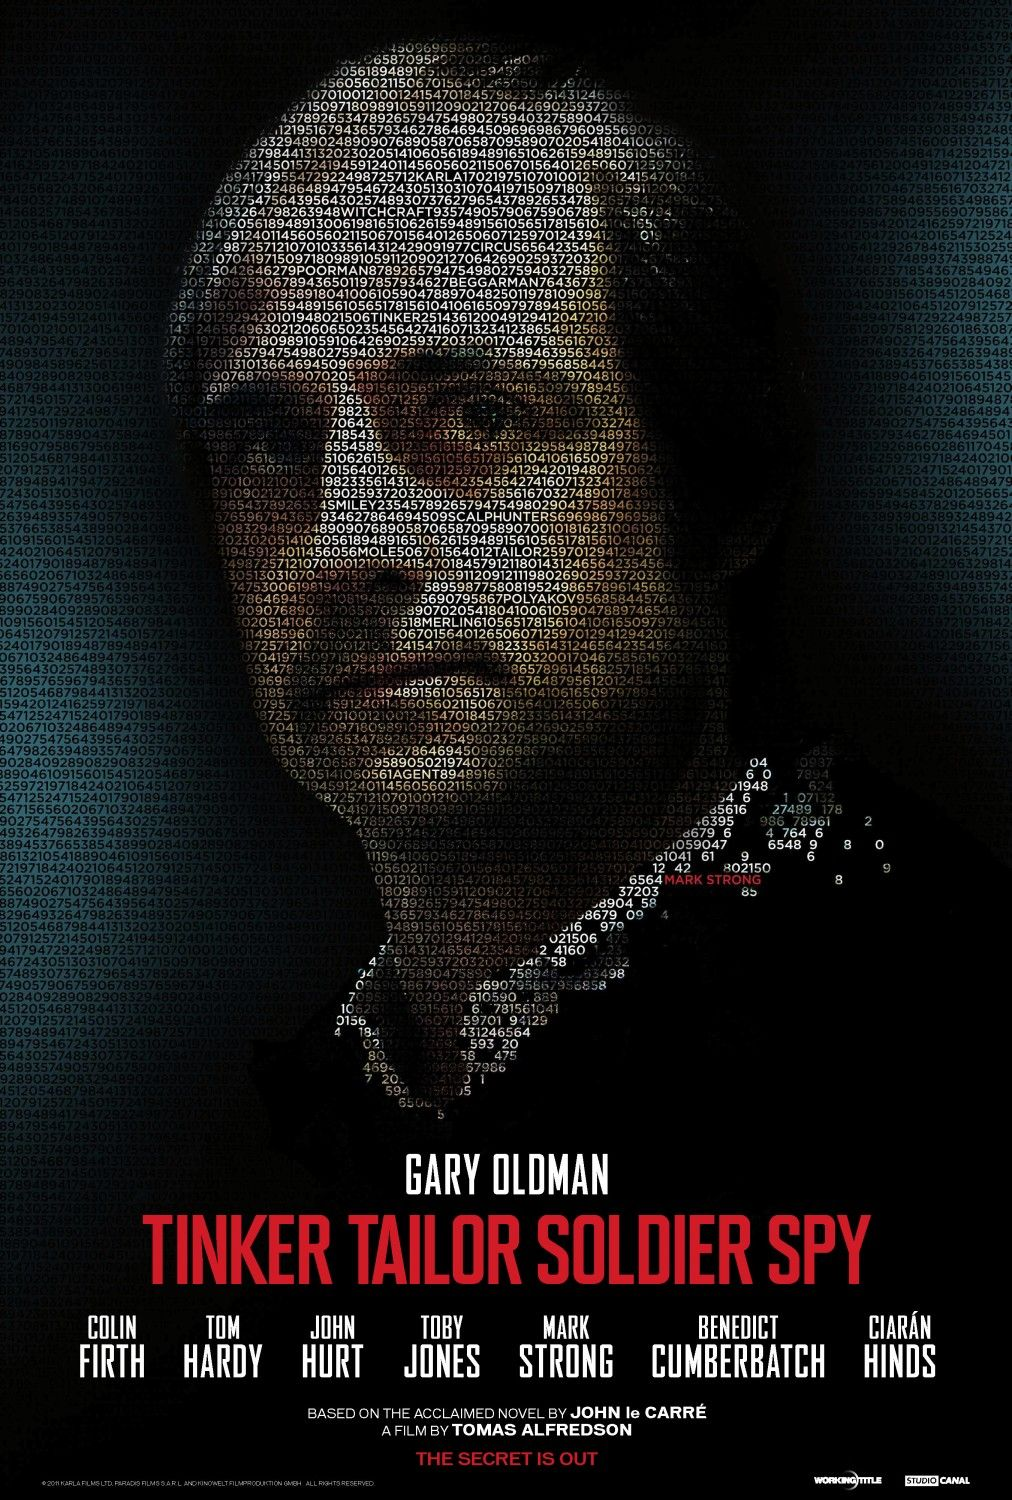 Tinker Tailor Soldier Spy poster - Mark Strong